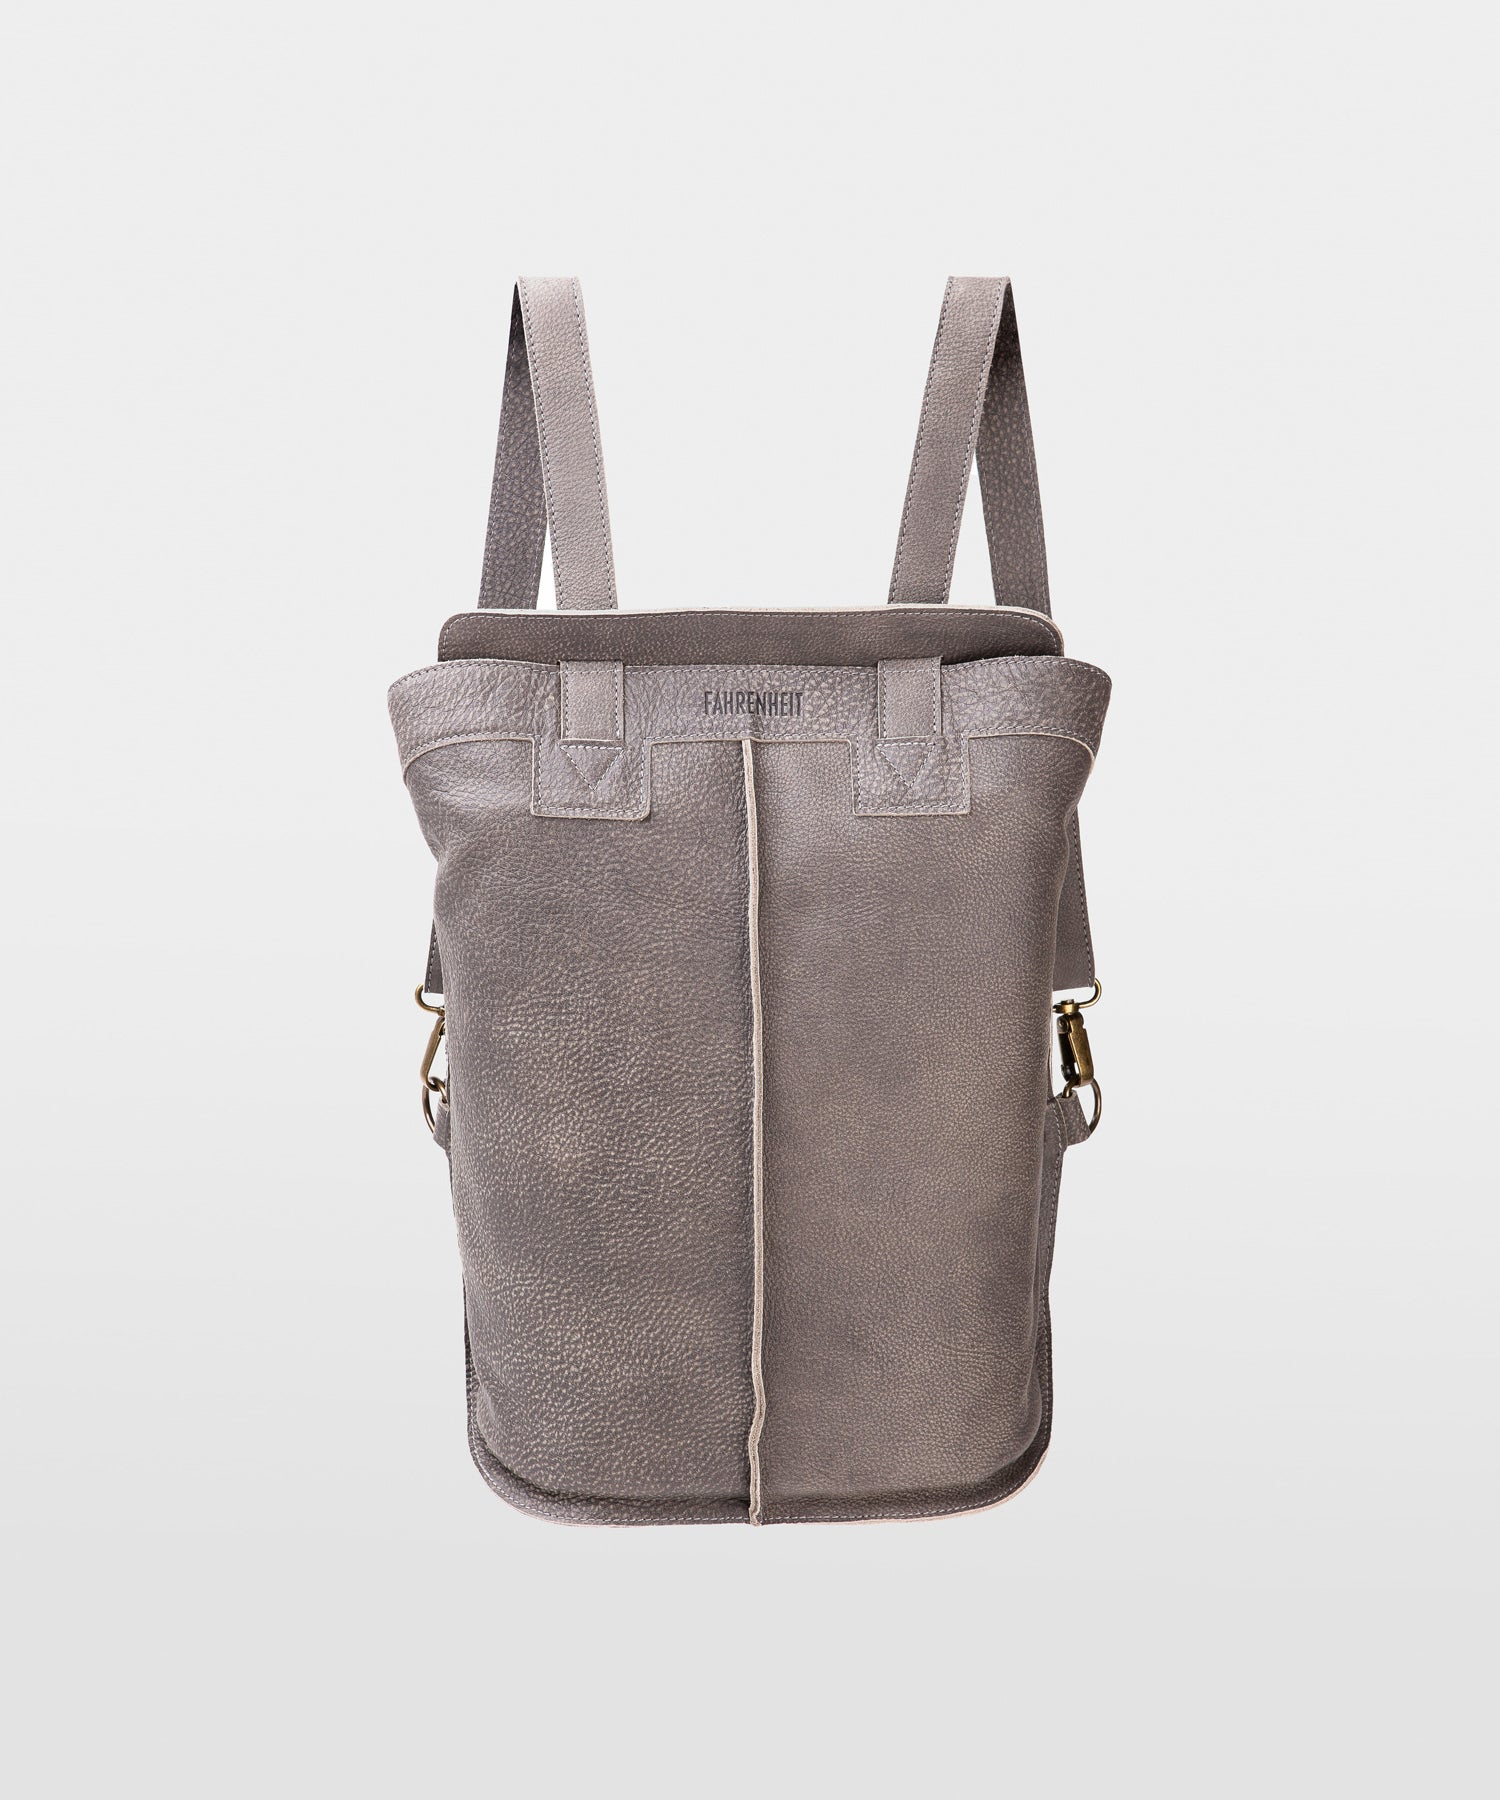 Mini-Backpack-Basic-Fahrenheit-Leather-Kodiak-Handmade-Nuovum-Barcelona-localdesigners